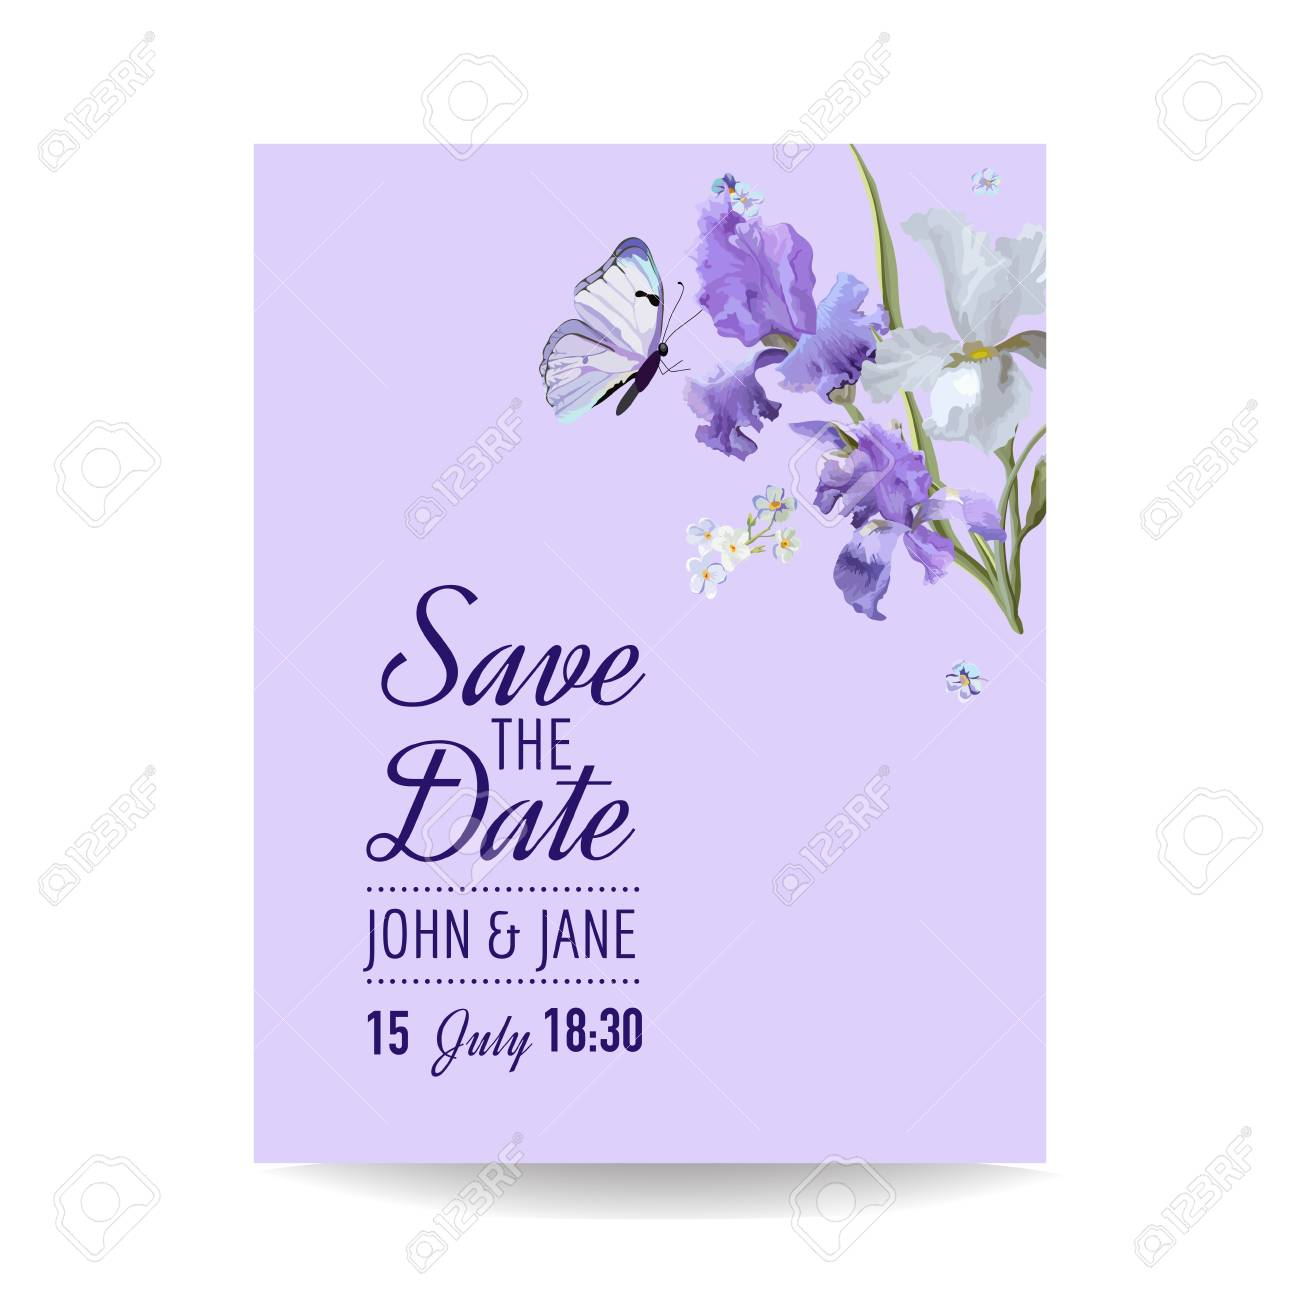 Save The Date Card With Flowers And Butterflies Floral Wedding